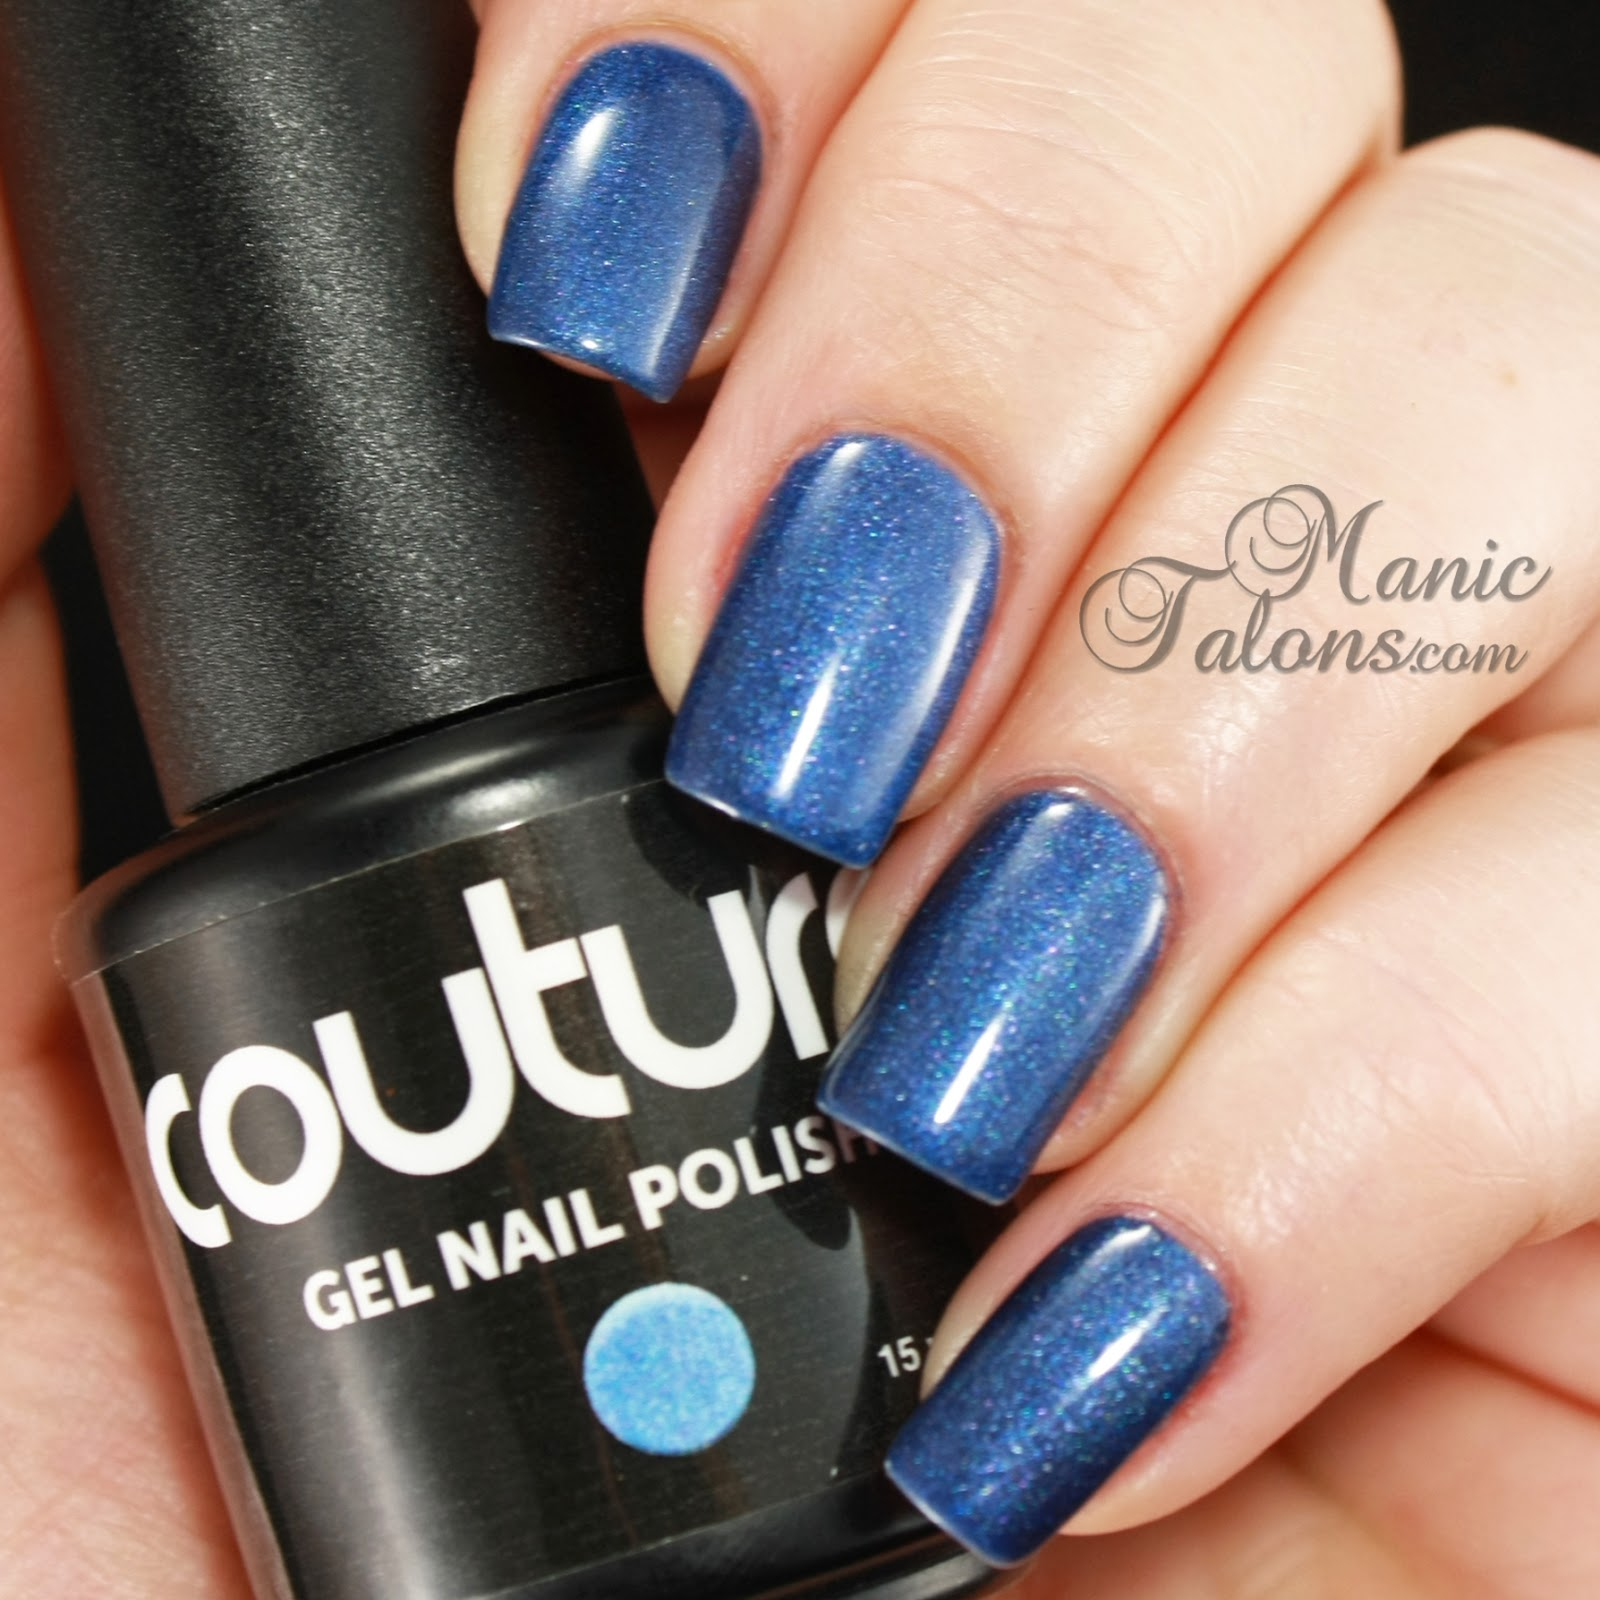 Couture Gel Nail Polish After Midnight Swatch